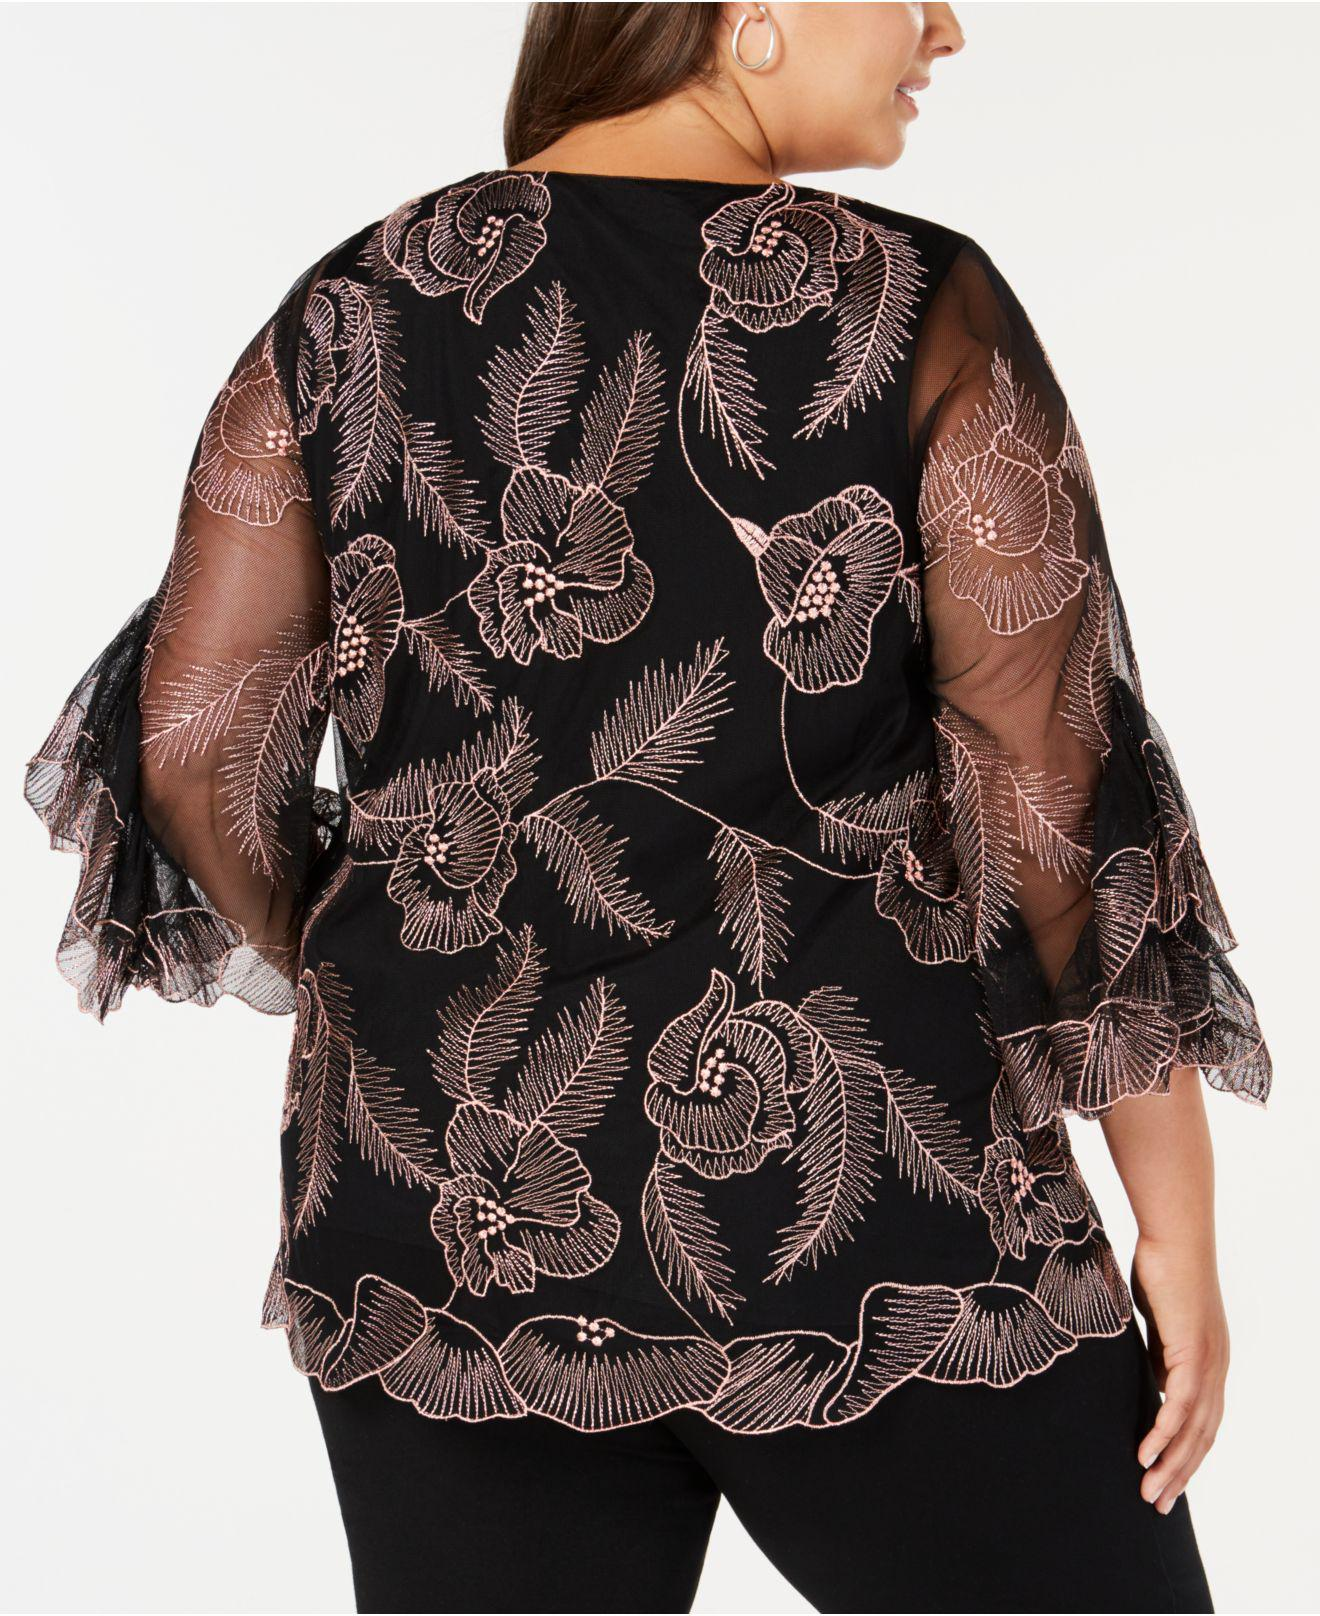 52d4974cc52 Lyst - Alfani Plus Size Embroidered Statement-sleeve Top